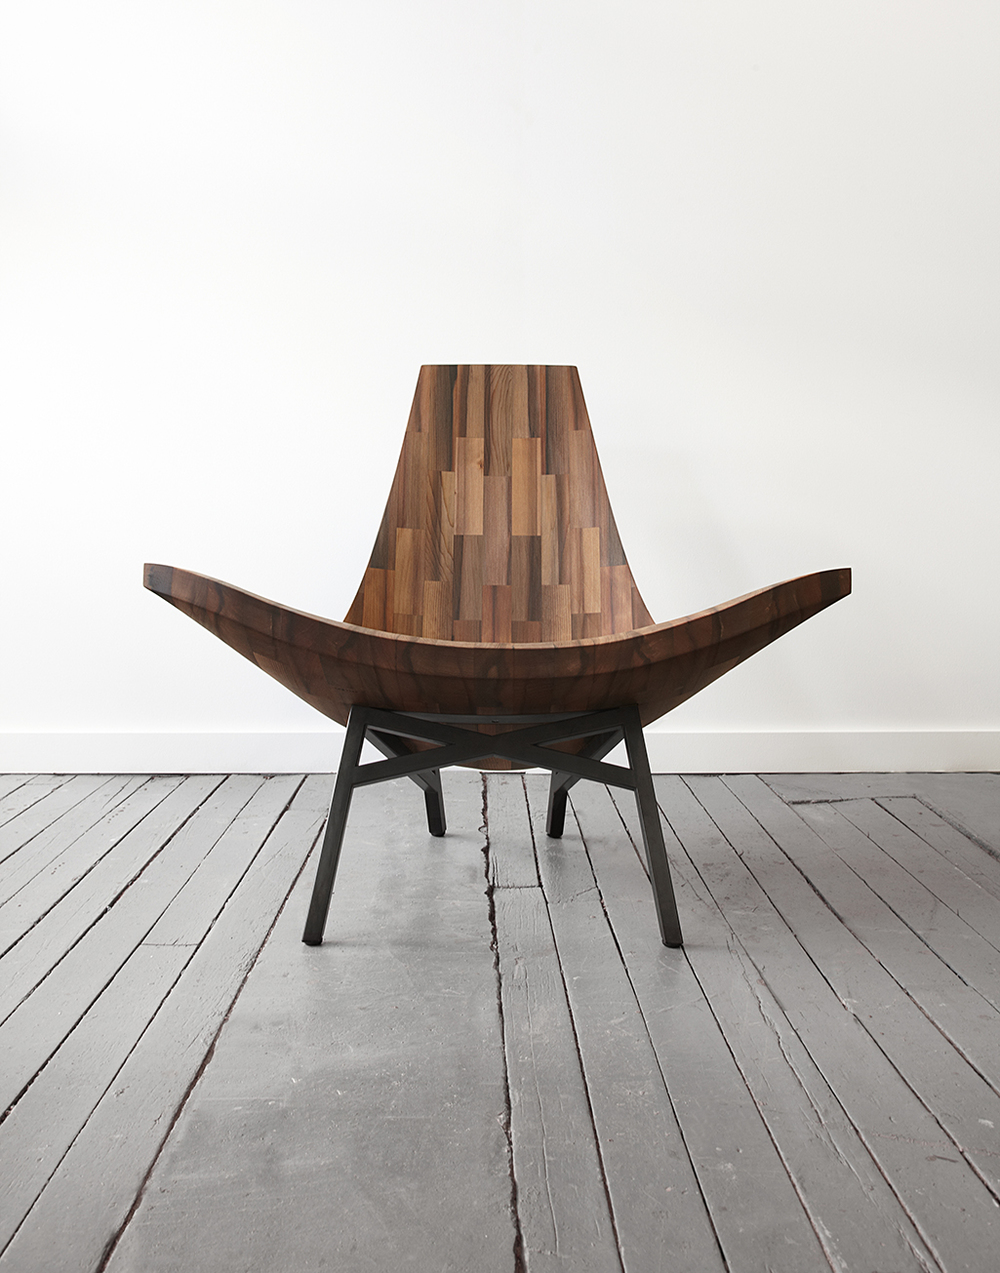 Water Tower Chair: lounge chair made from reclaimed timbers of a New York City Water Tower